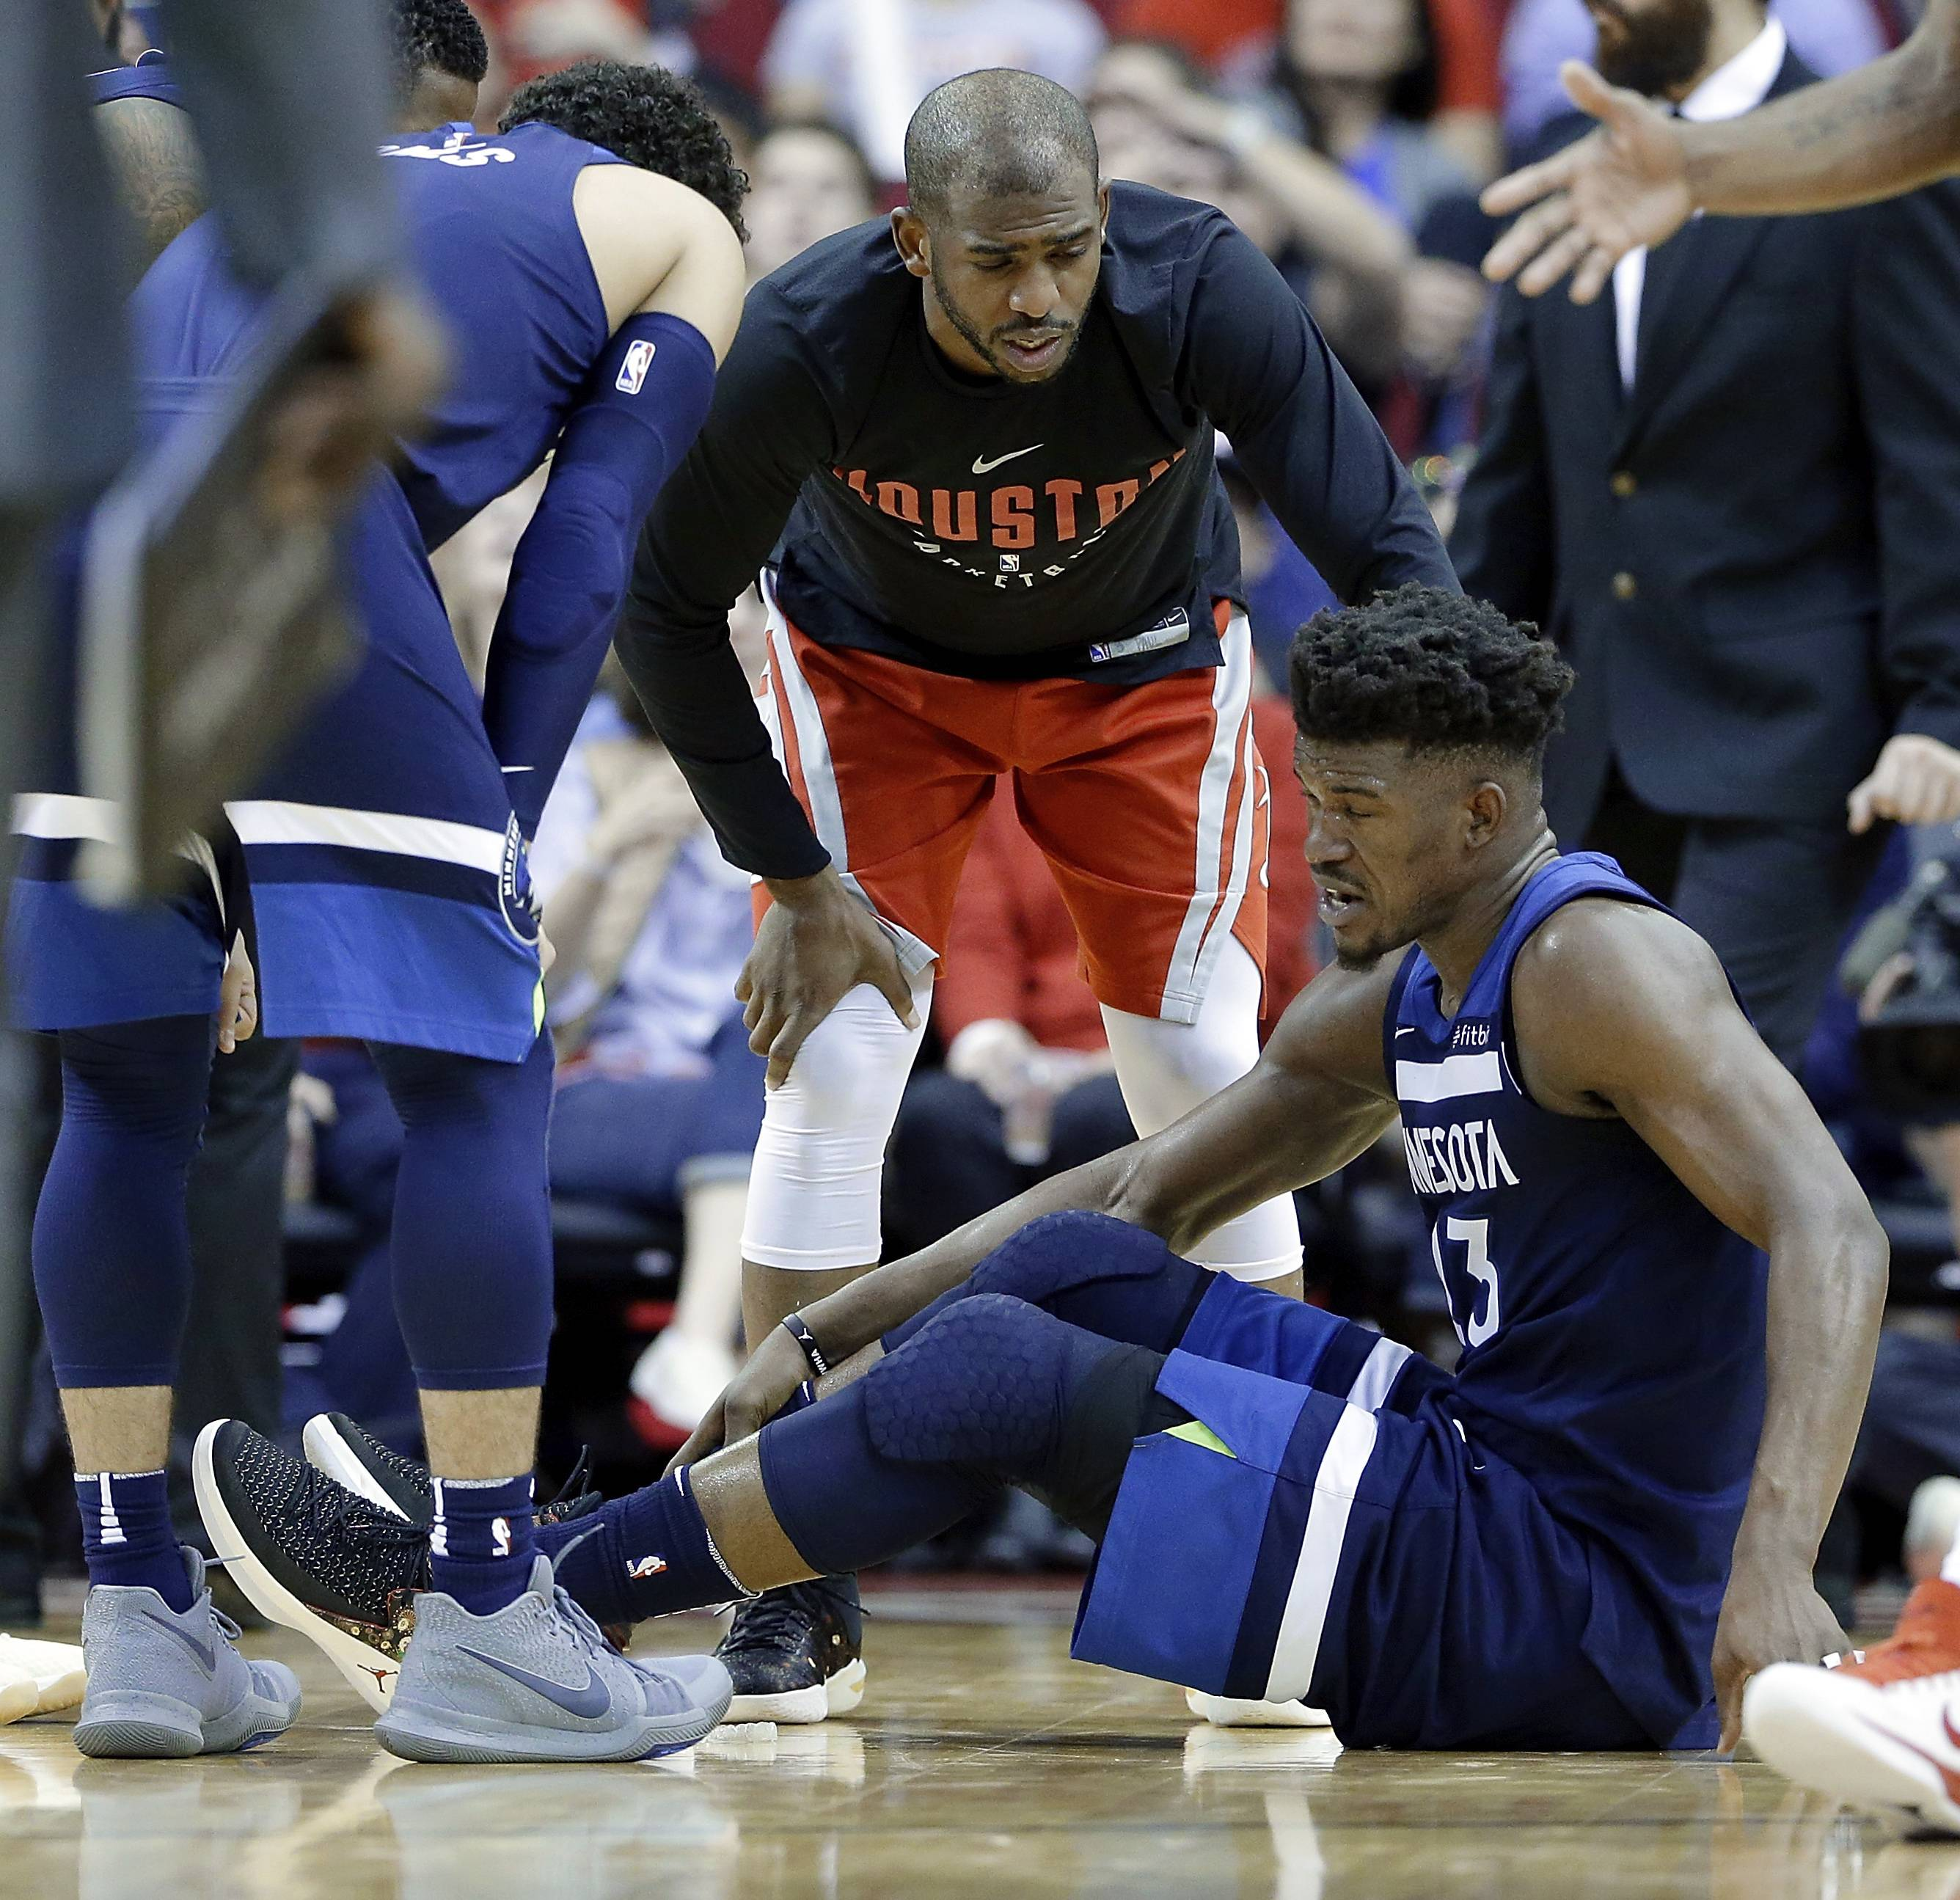 Minnesota Timberwolves guard Jimmy Butler was diagnosed with a meniscus injury after injuring his right knee on Friday against Houston.